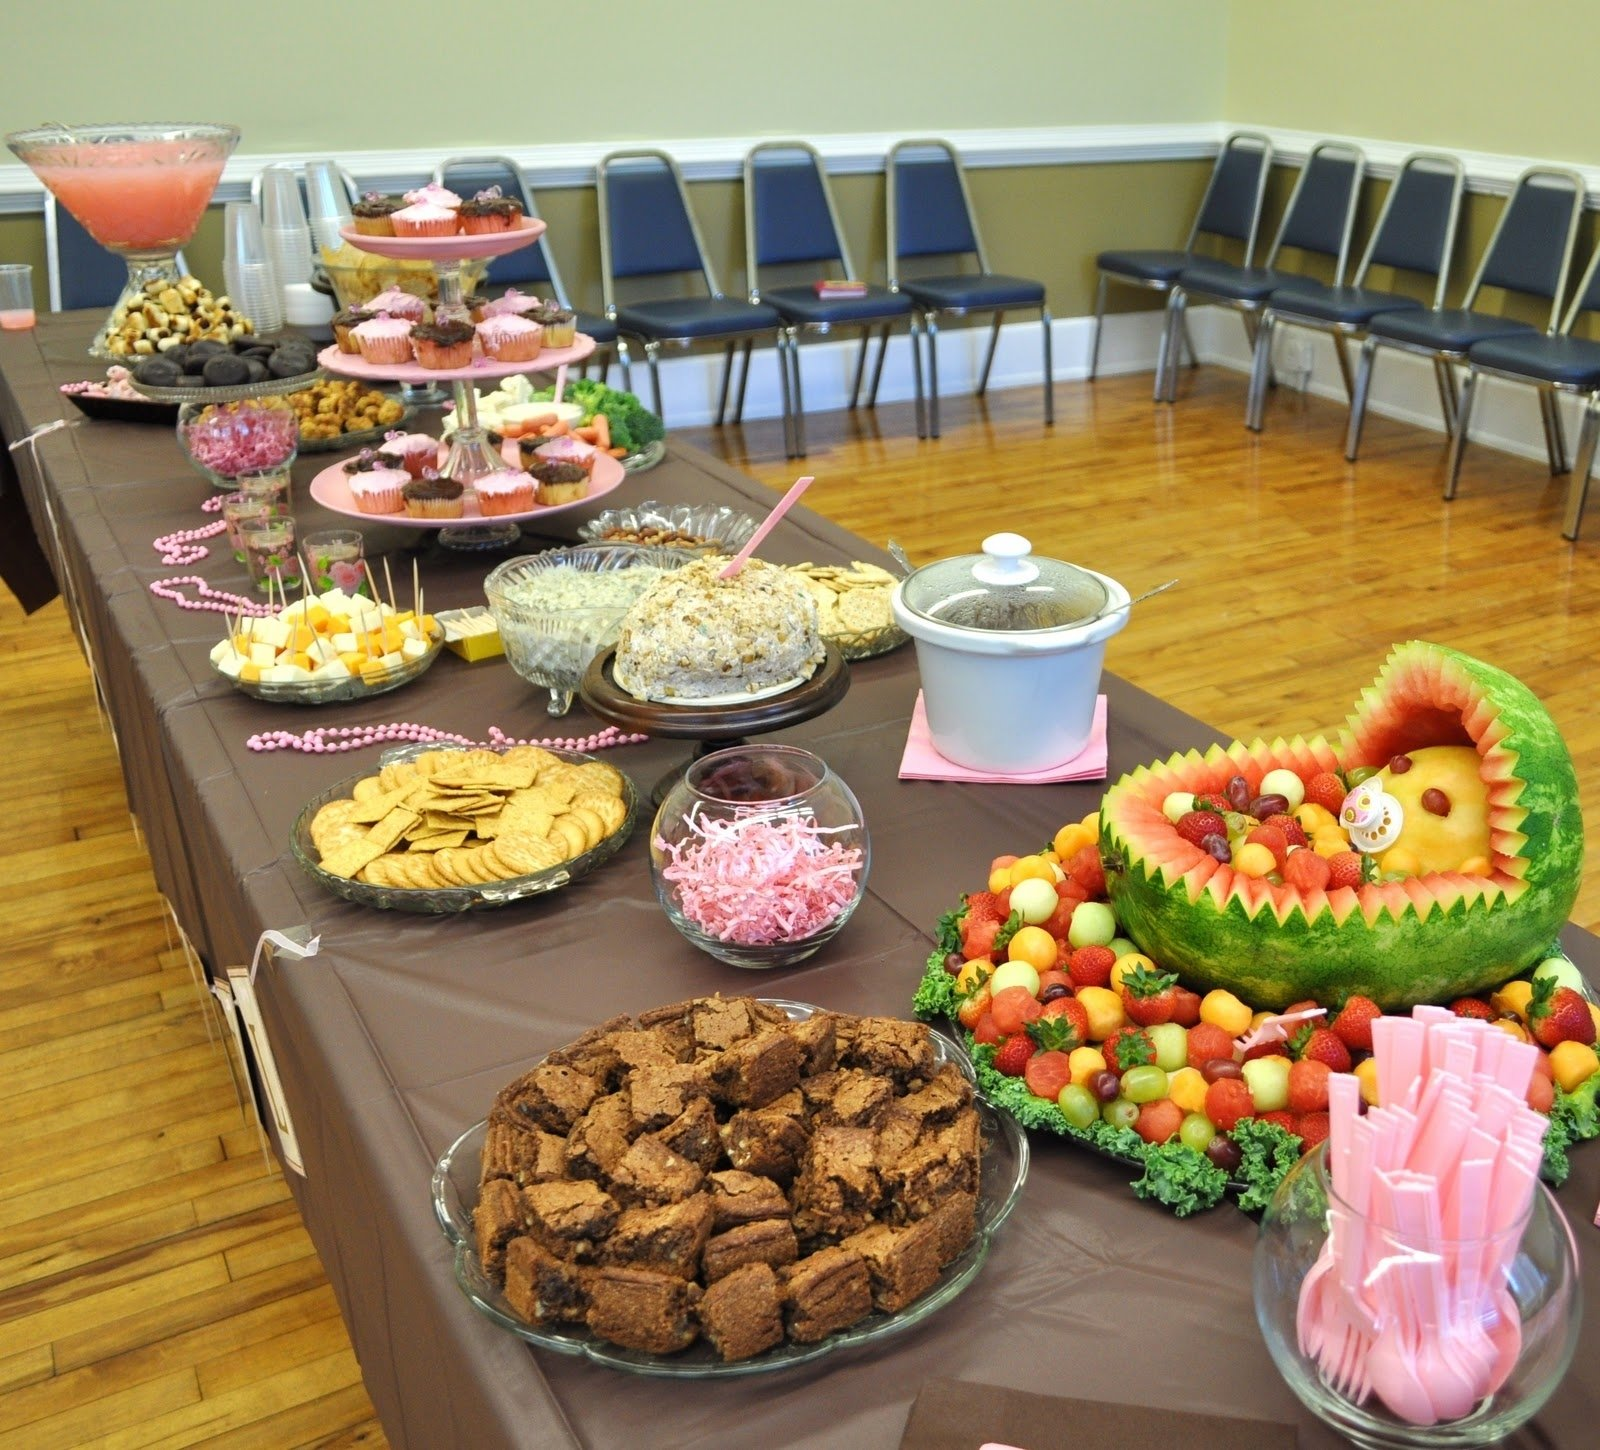 10 Trendy Cute Baby Shower Food Ideas photo baby shower food ideas image 2020